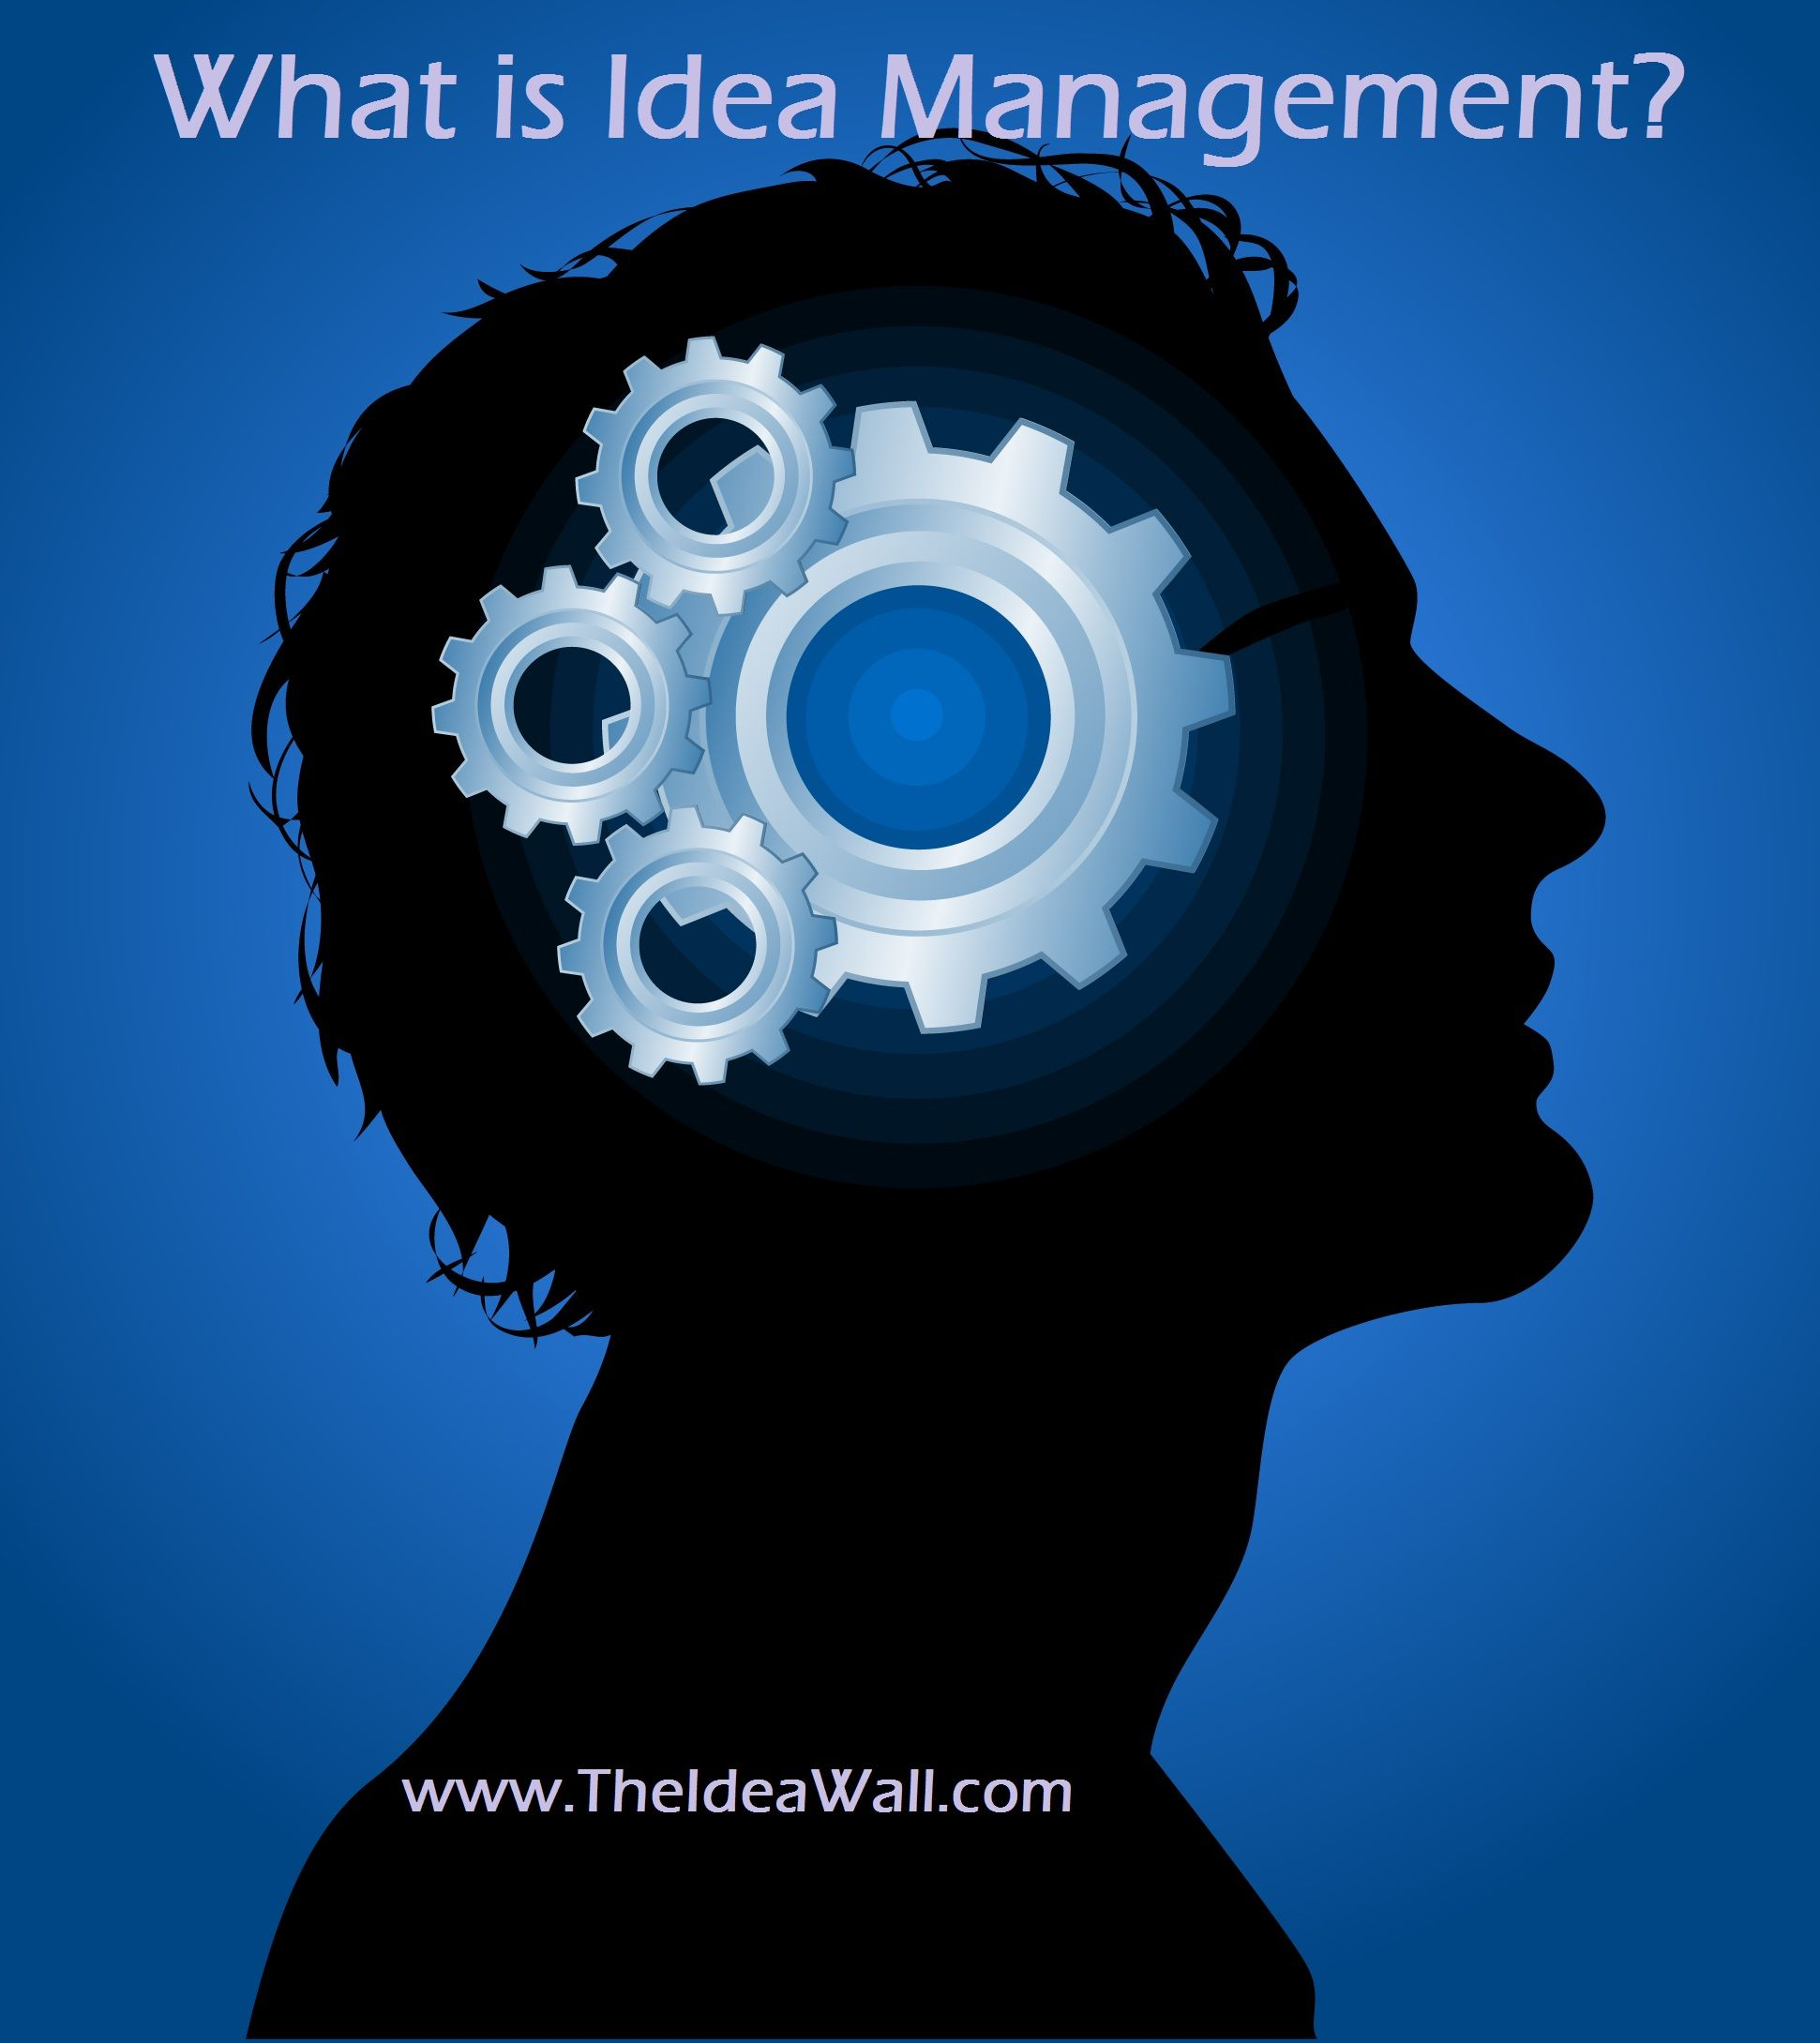 What is Idea Management? Well, it certainly can improve